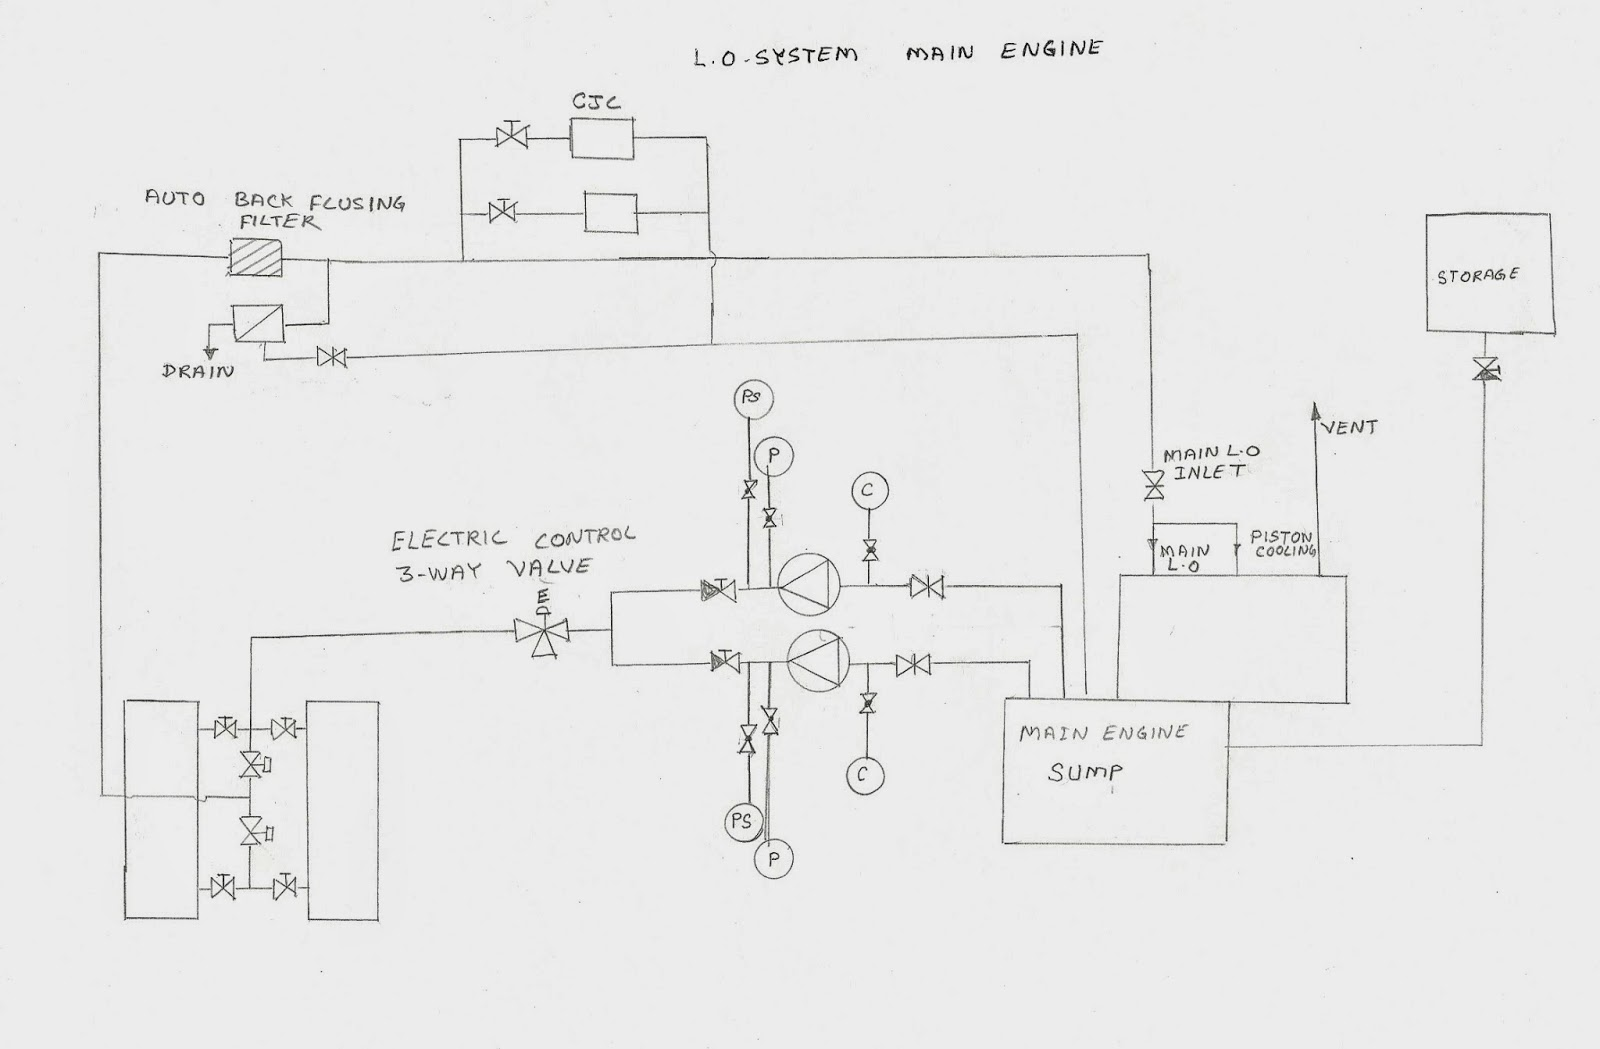 hight resolution of piping diagram in engine room wiring diagram view piping diagram in engine room